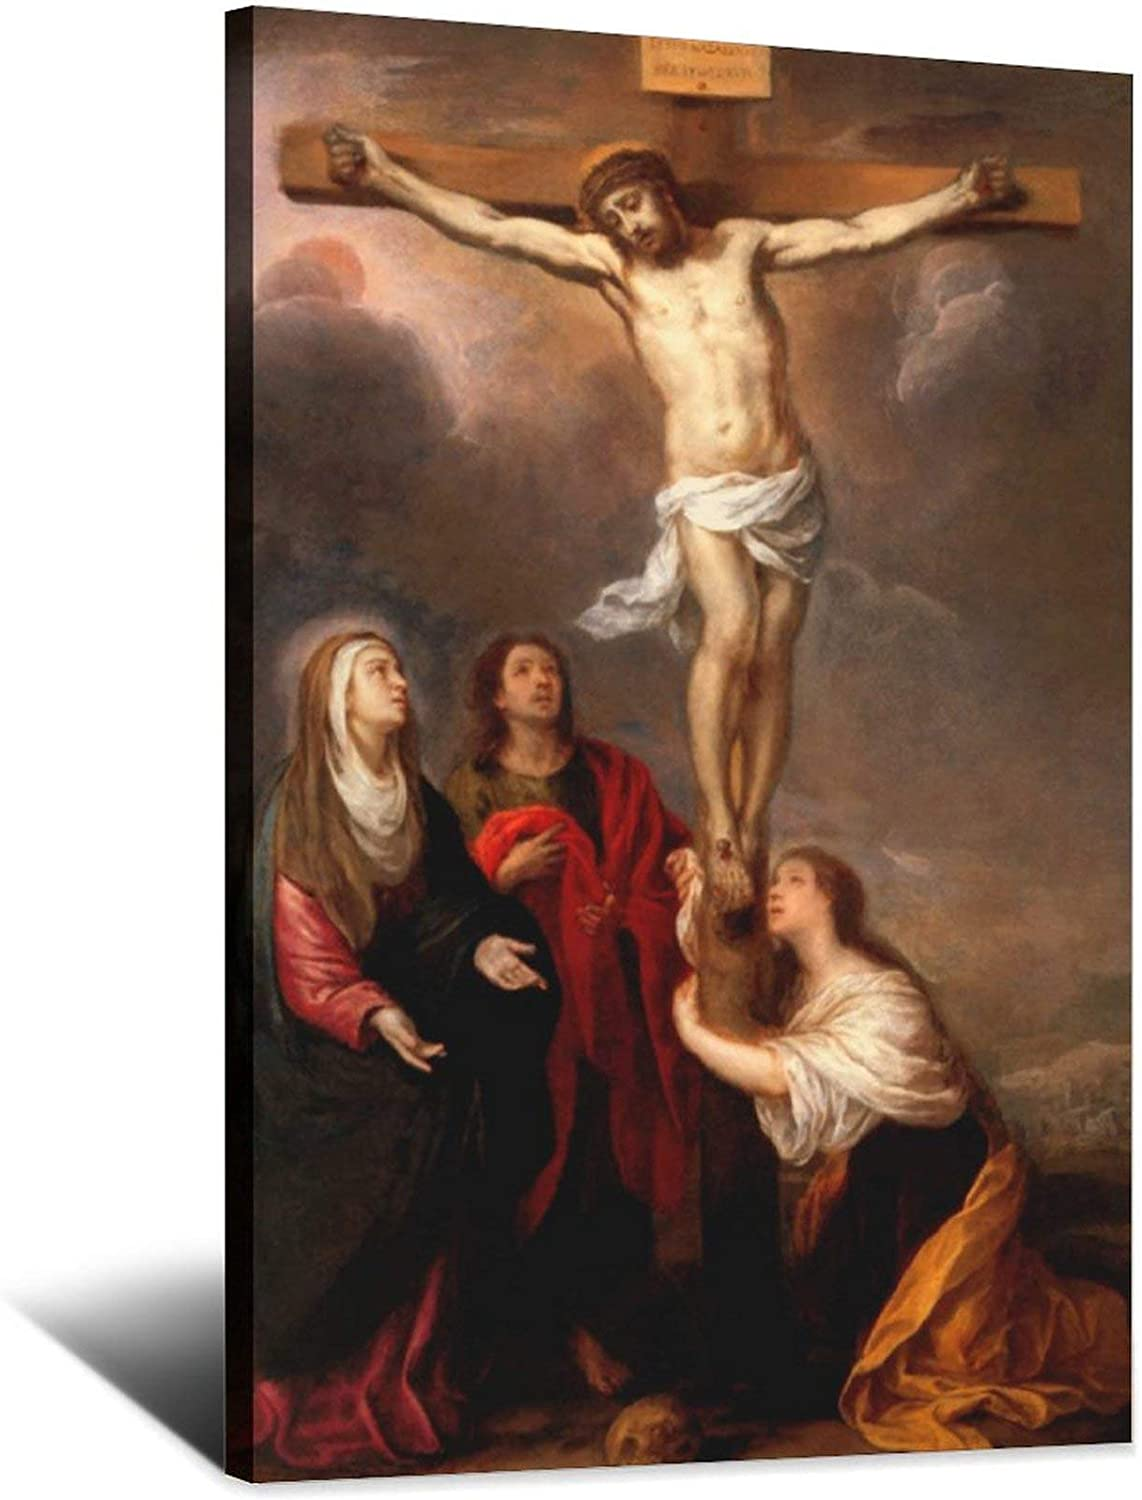 YTCH Jesus Christ Poster Canvas Office Jacksonville Mall Picture Modern Art New popularity